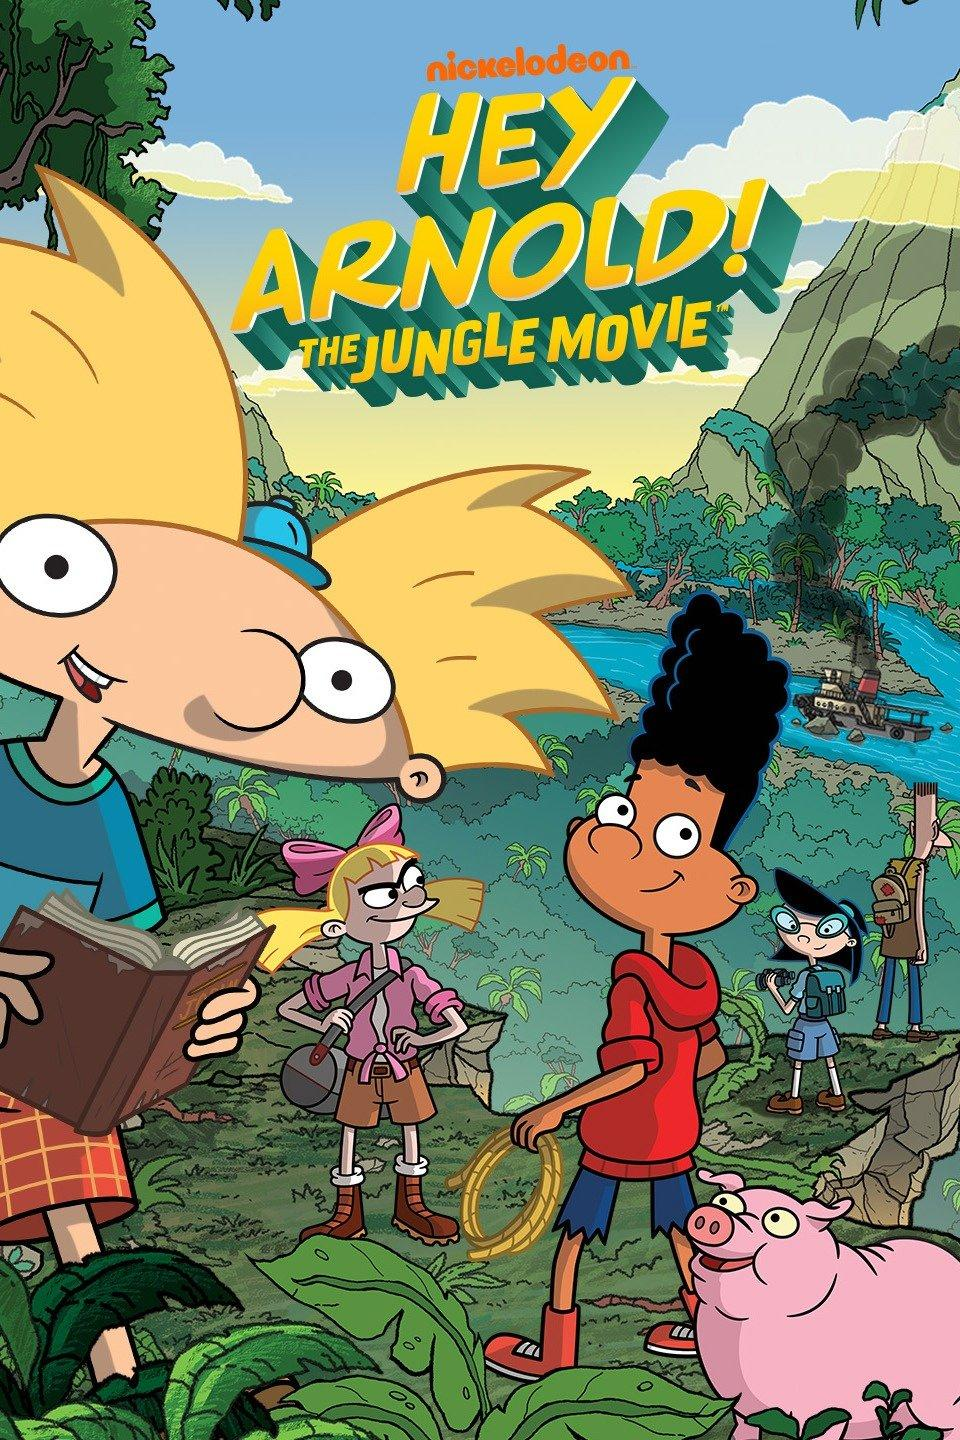 Эй, Арнольд! Кино из Джунгли / Hey Arnold! The Jungle Movie